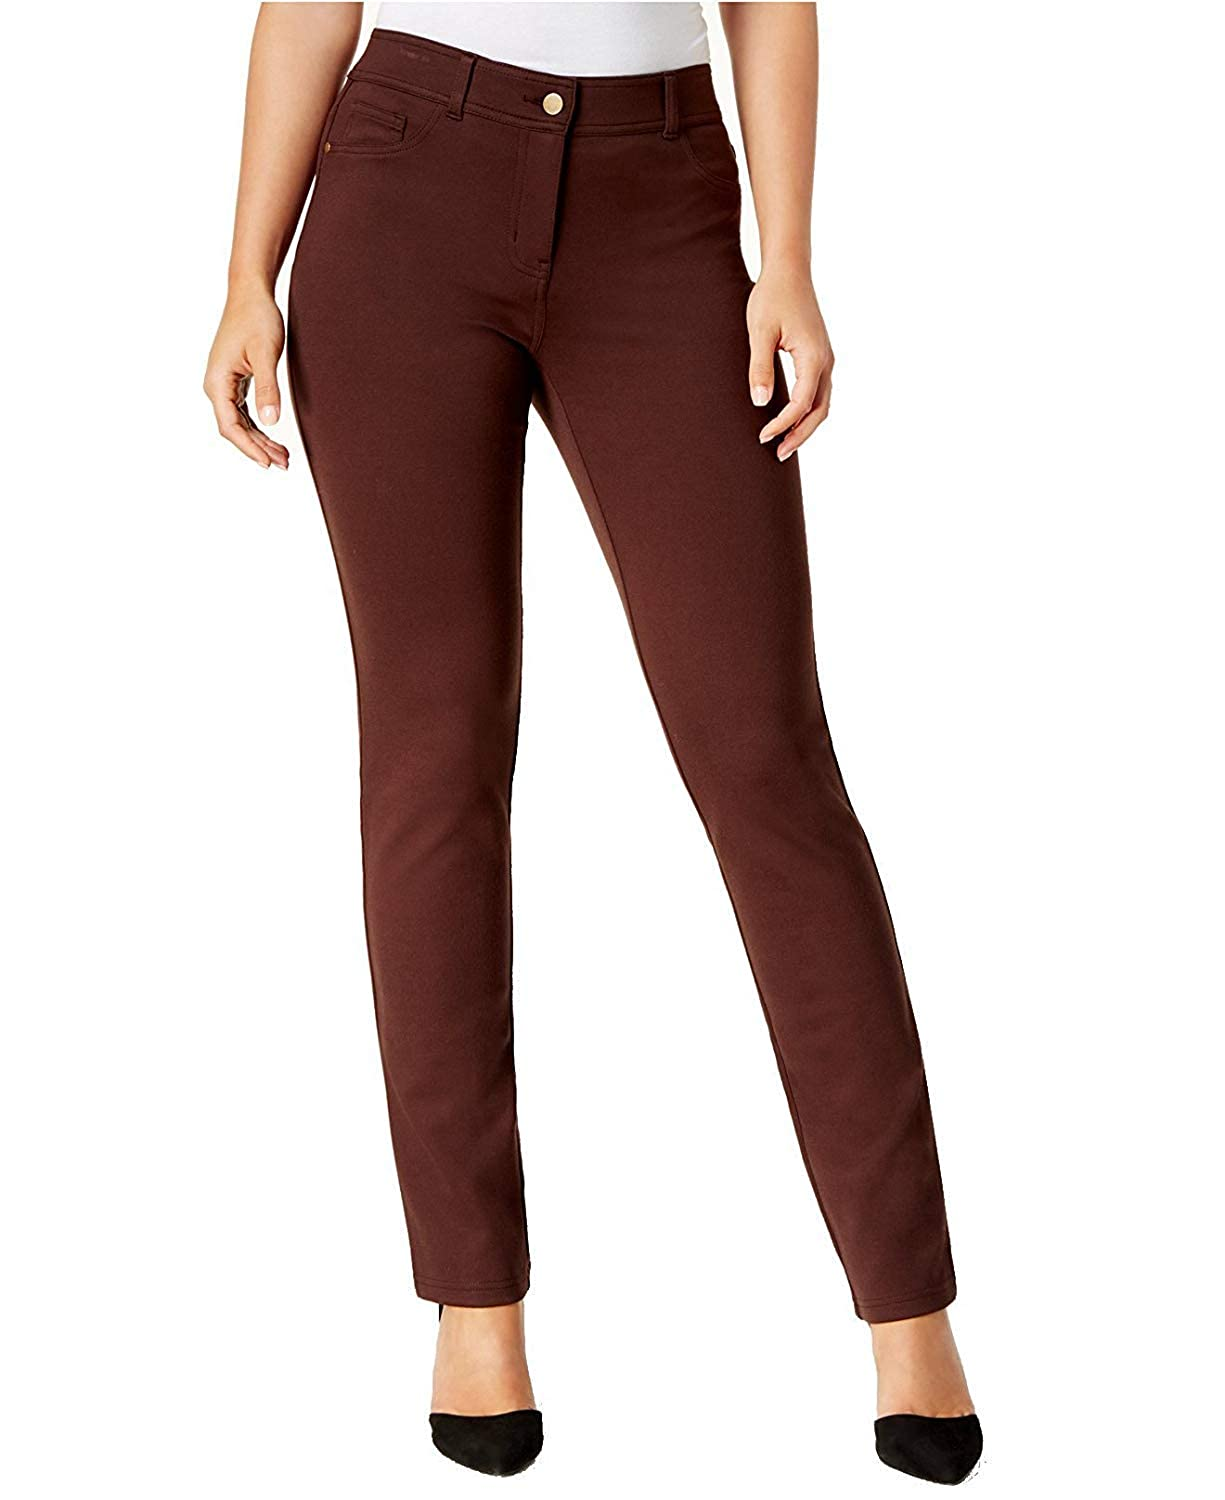 Rich Truffle Style & Co...... Women's FauxPocket SlimFit Pants